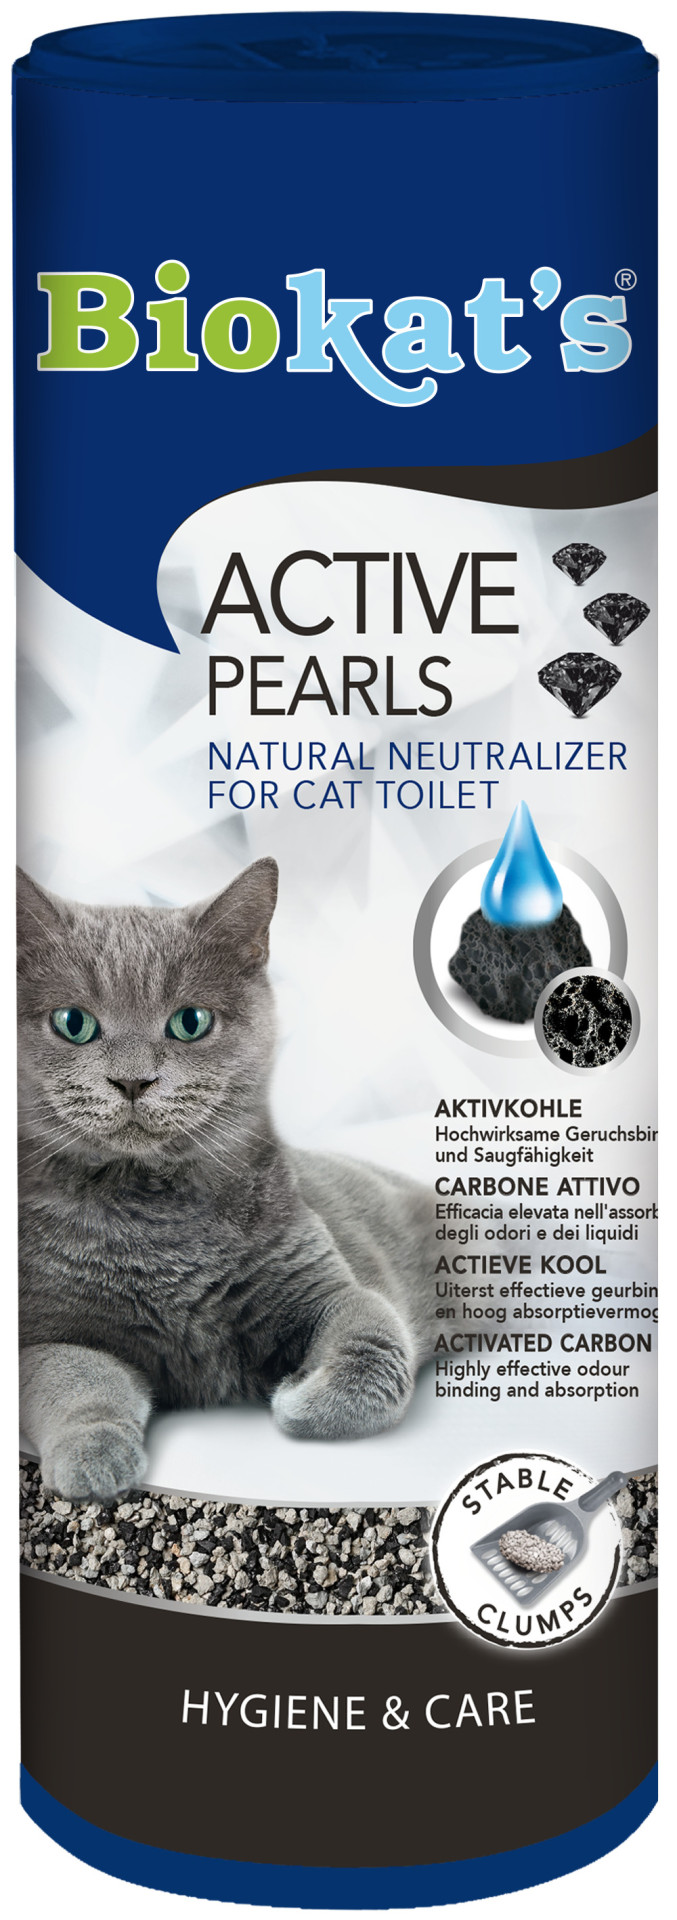 Biokat's Active Pearls 700 gr